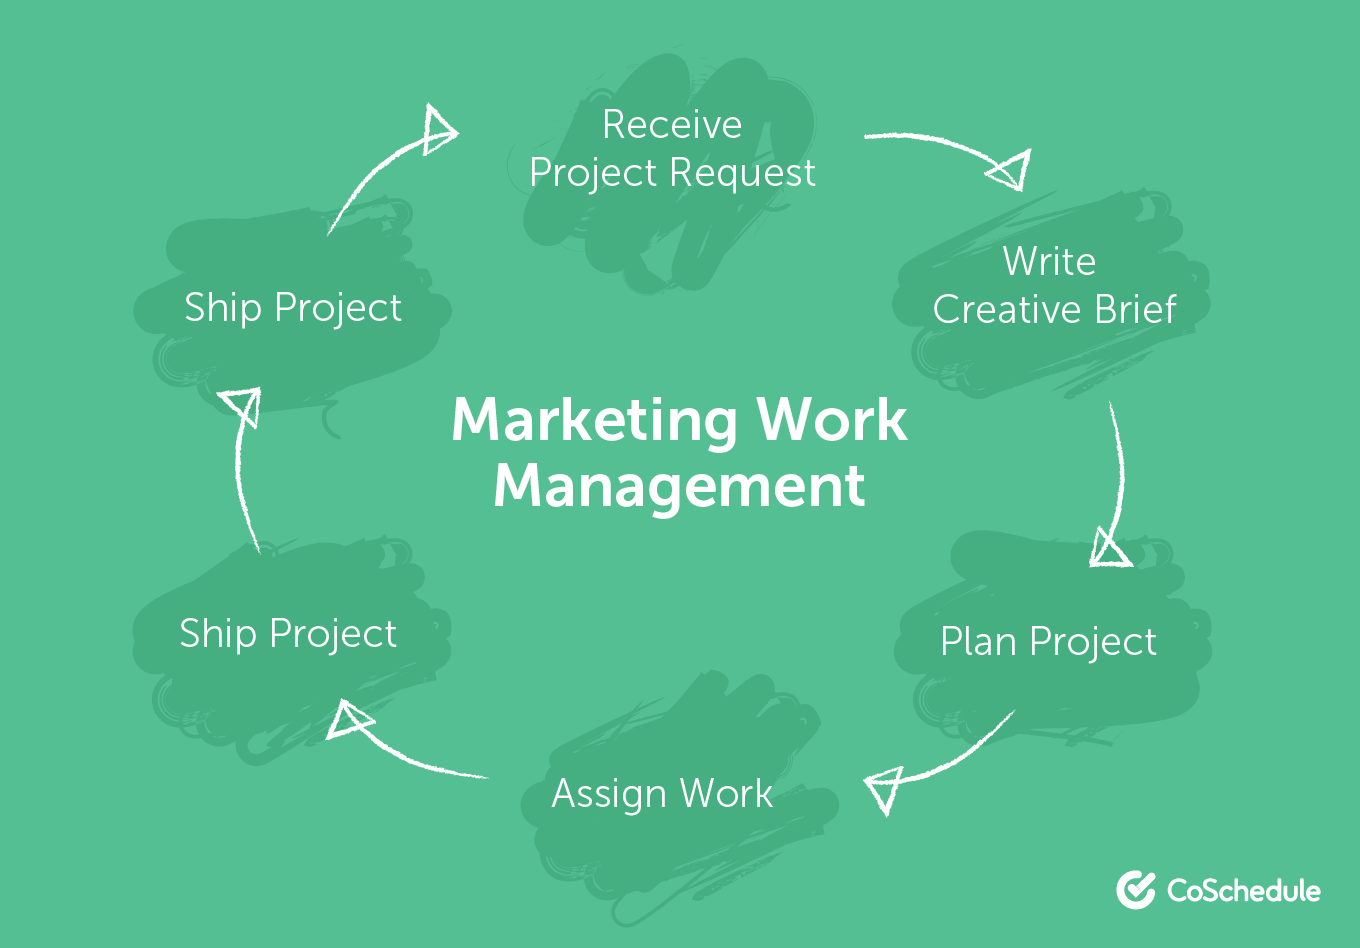 Illustration of the Marketing Work Management Process